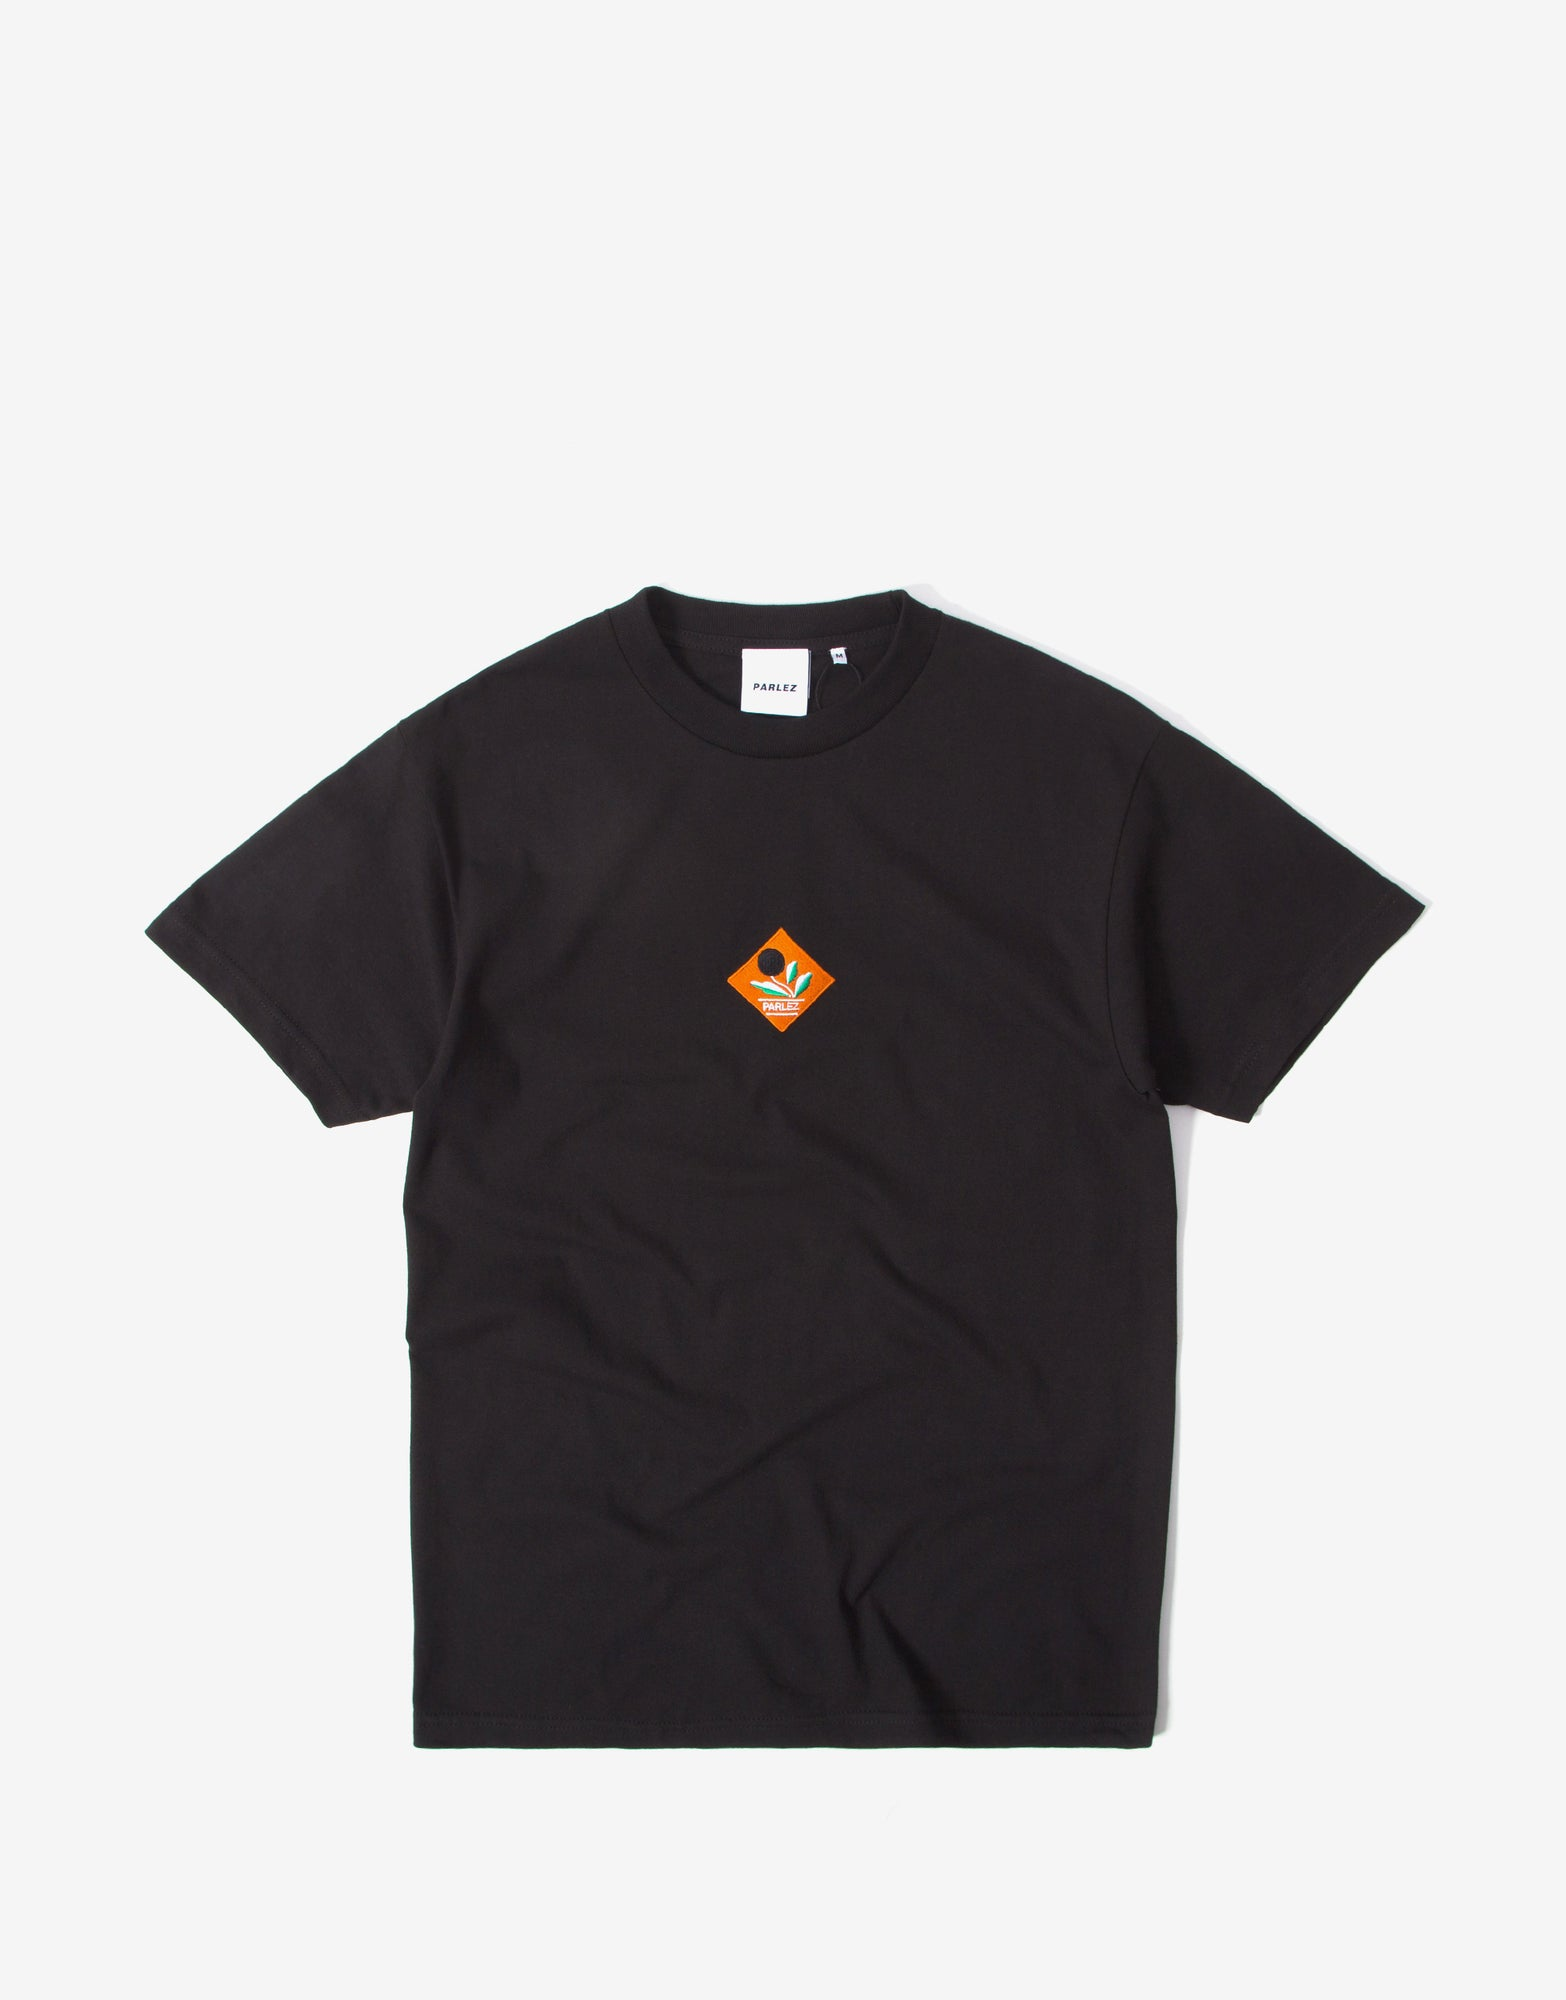 Parlez Kojo T Shirt - Black